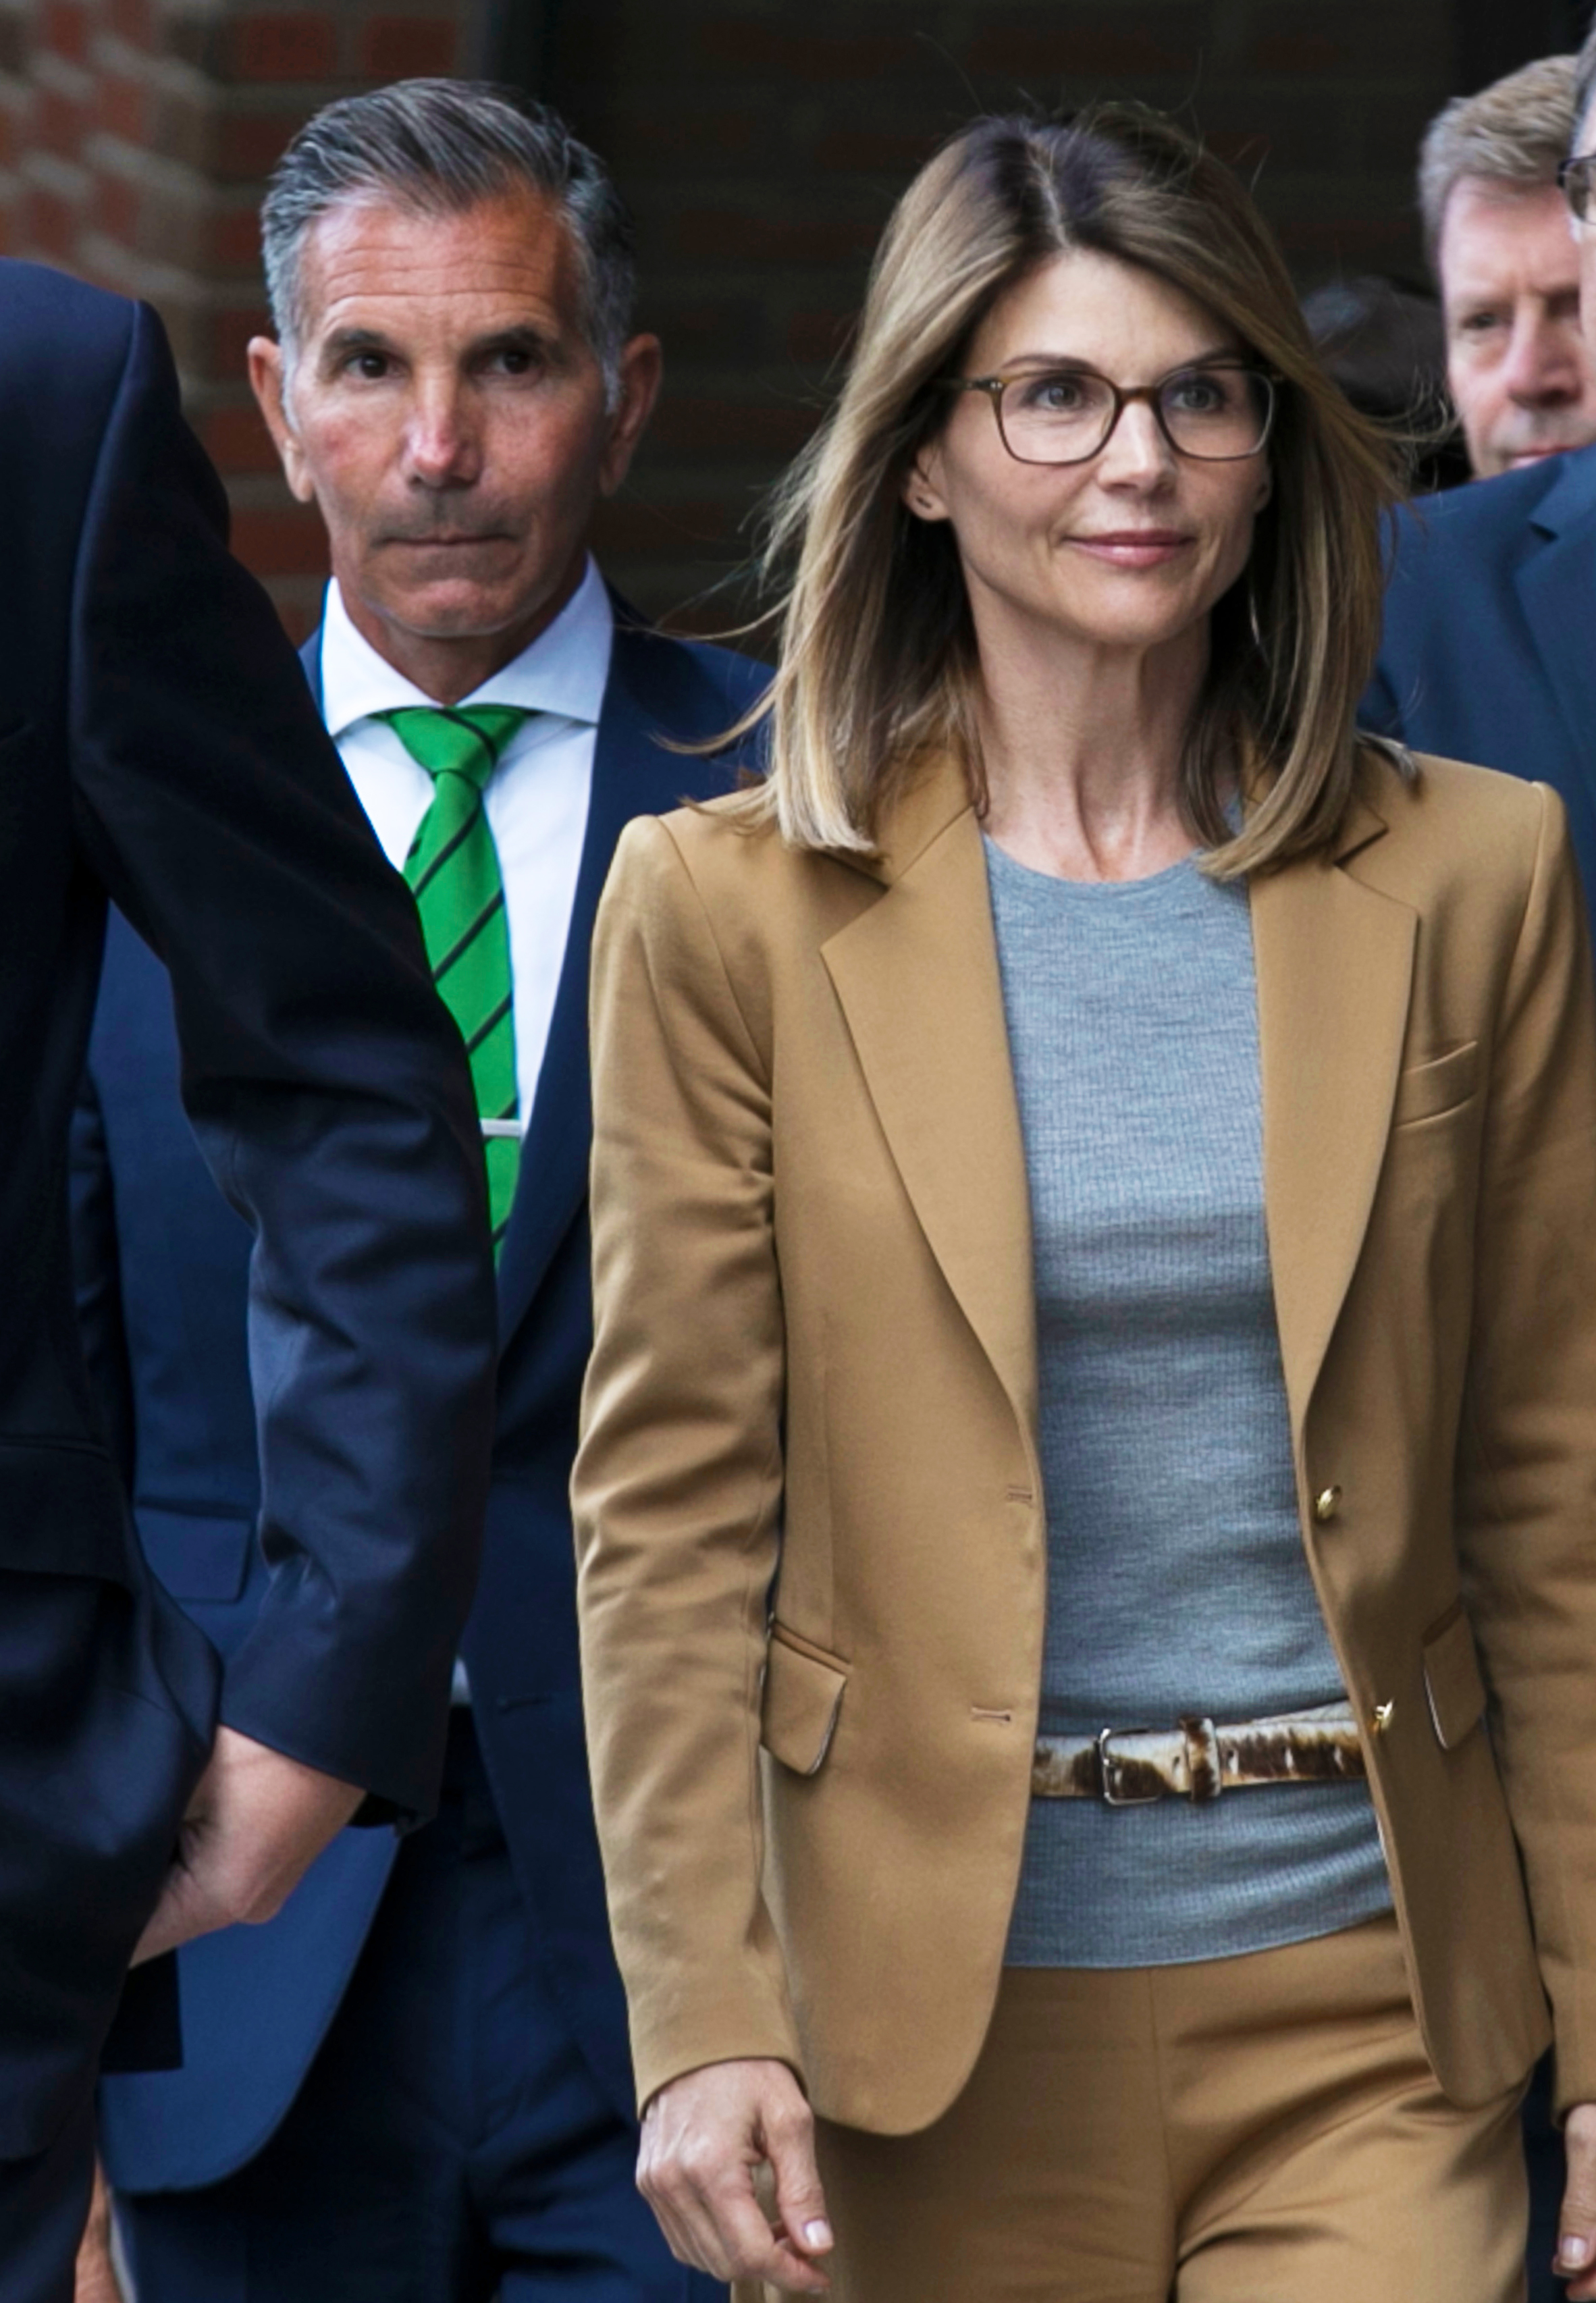 Lori Loughlin and Mossimo Giannulli Resign From Country Club Amid Scandal